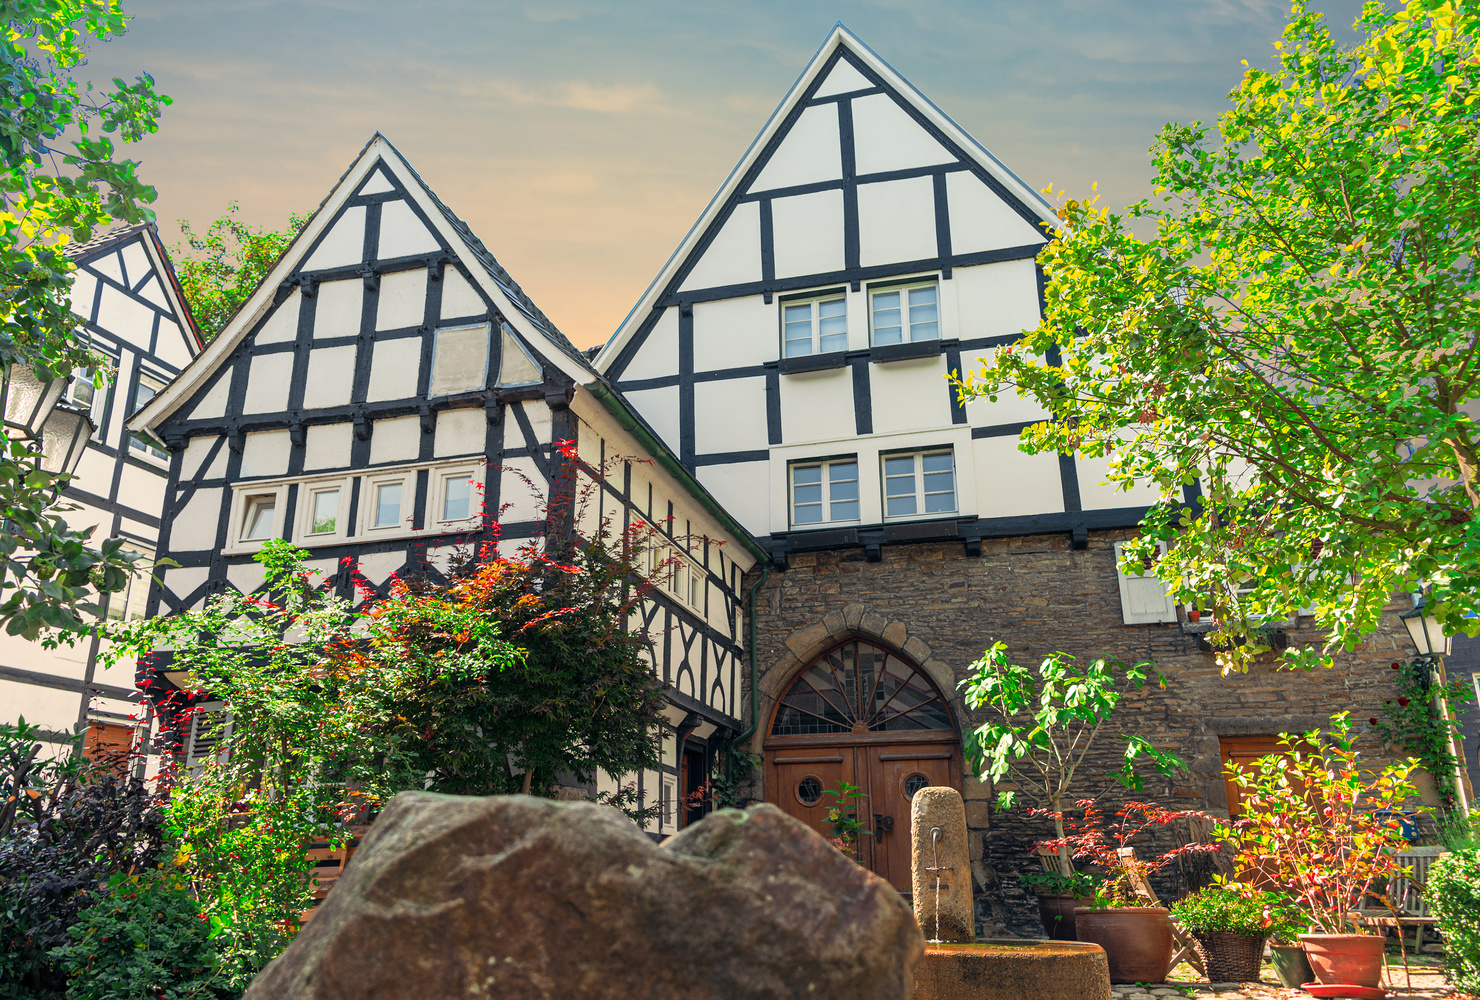 Half-timbered house in Germany by Felix Berger